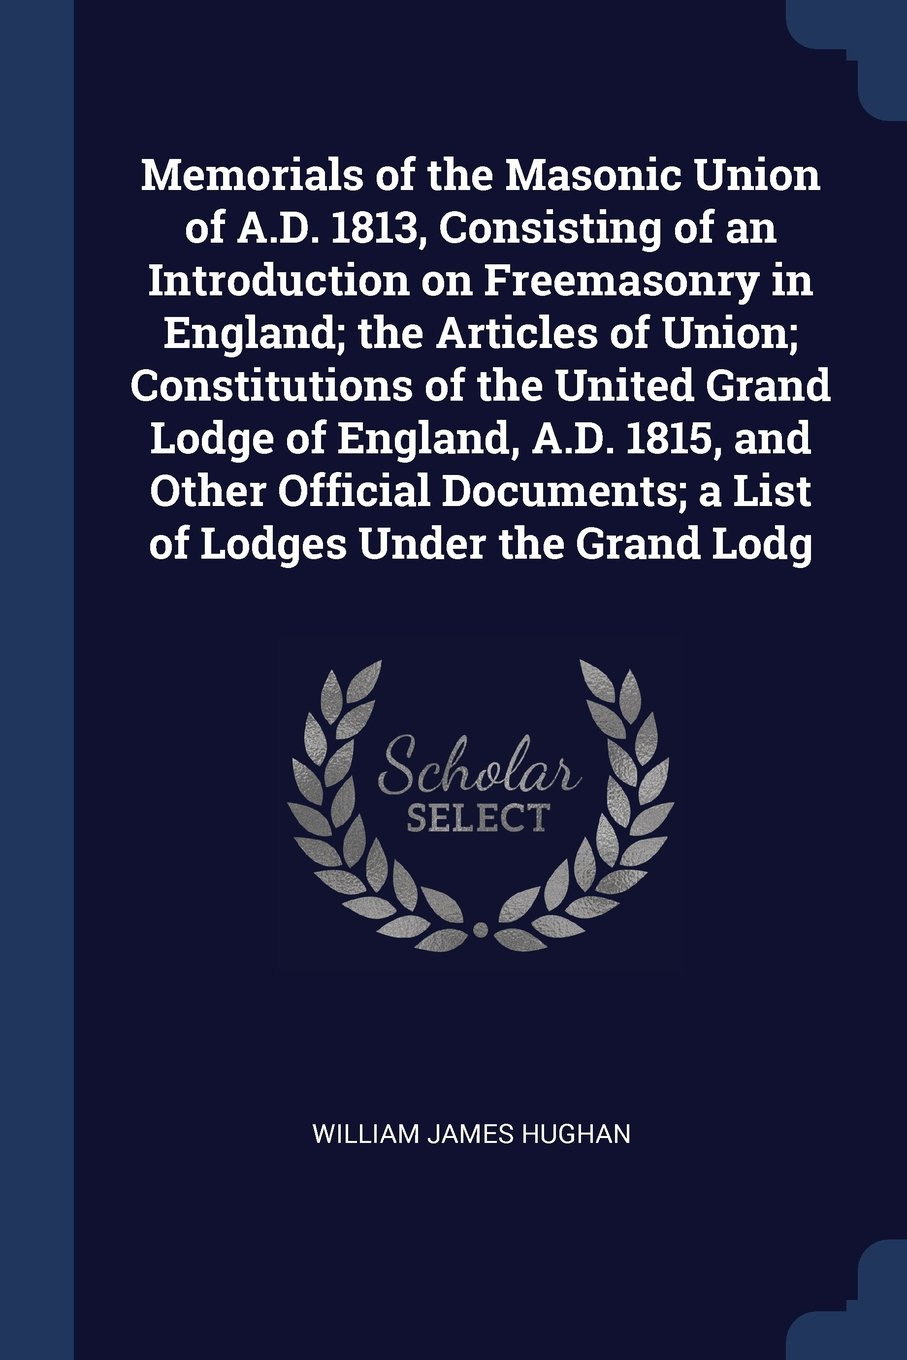 Read Online Memorials of the Masonic Union of A.D. 1813, Consisting of an Introduction on Freemasonry in England; the Articles of Union; Constitutions of the ... a List of Lodges Under the Grand Lodg ebook